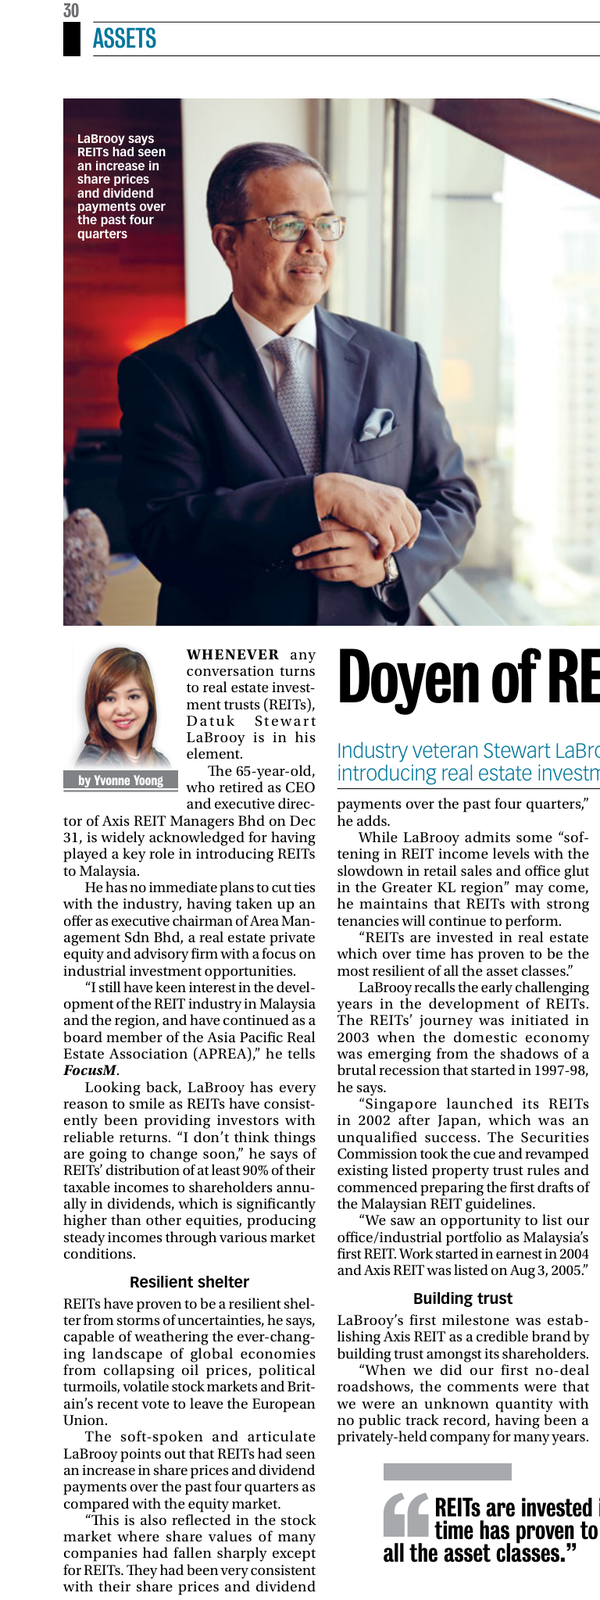 Doyen of REIT